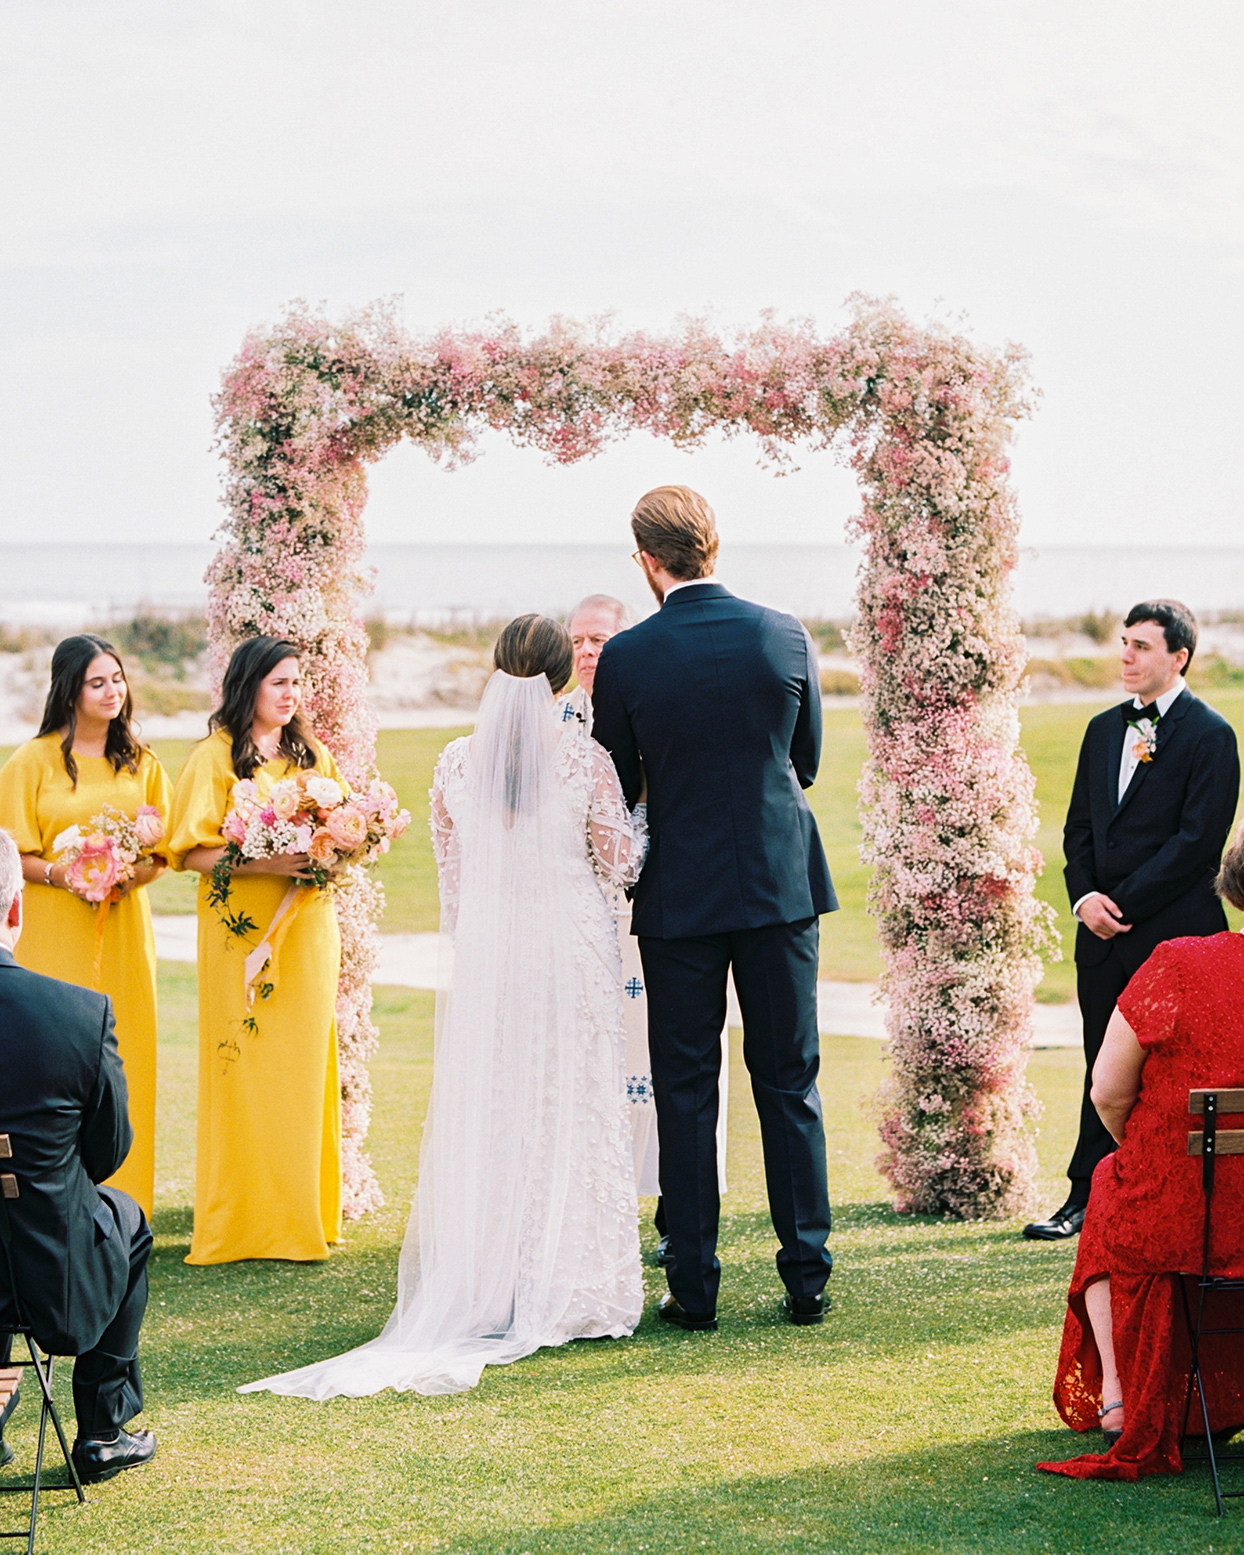 lauren dan wedding ceremony officiant and couple by floral arch